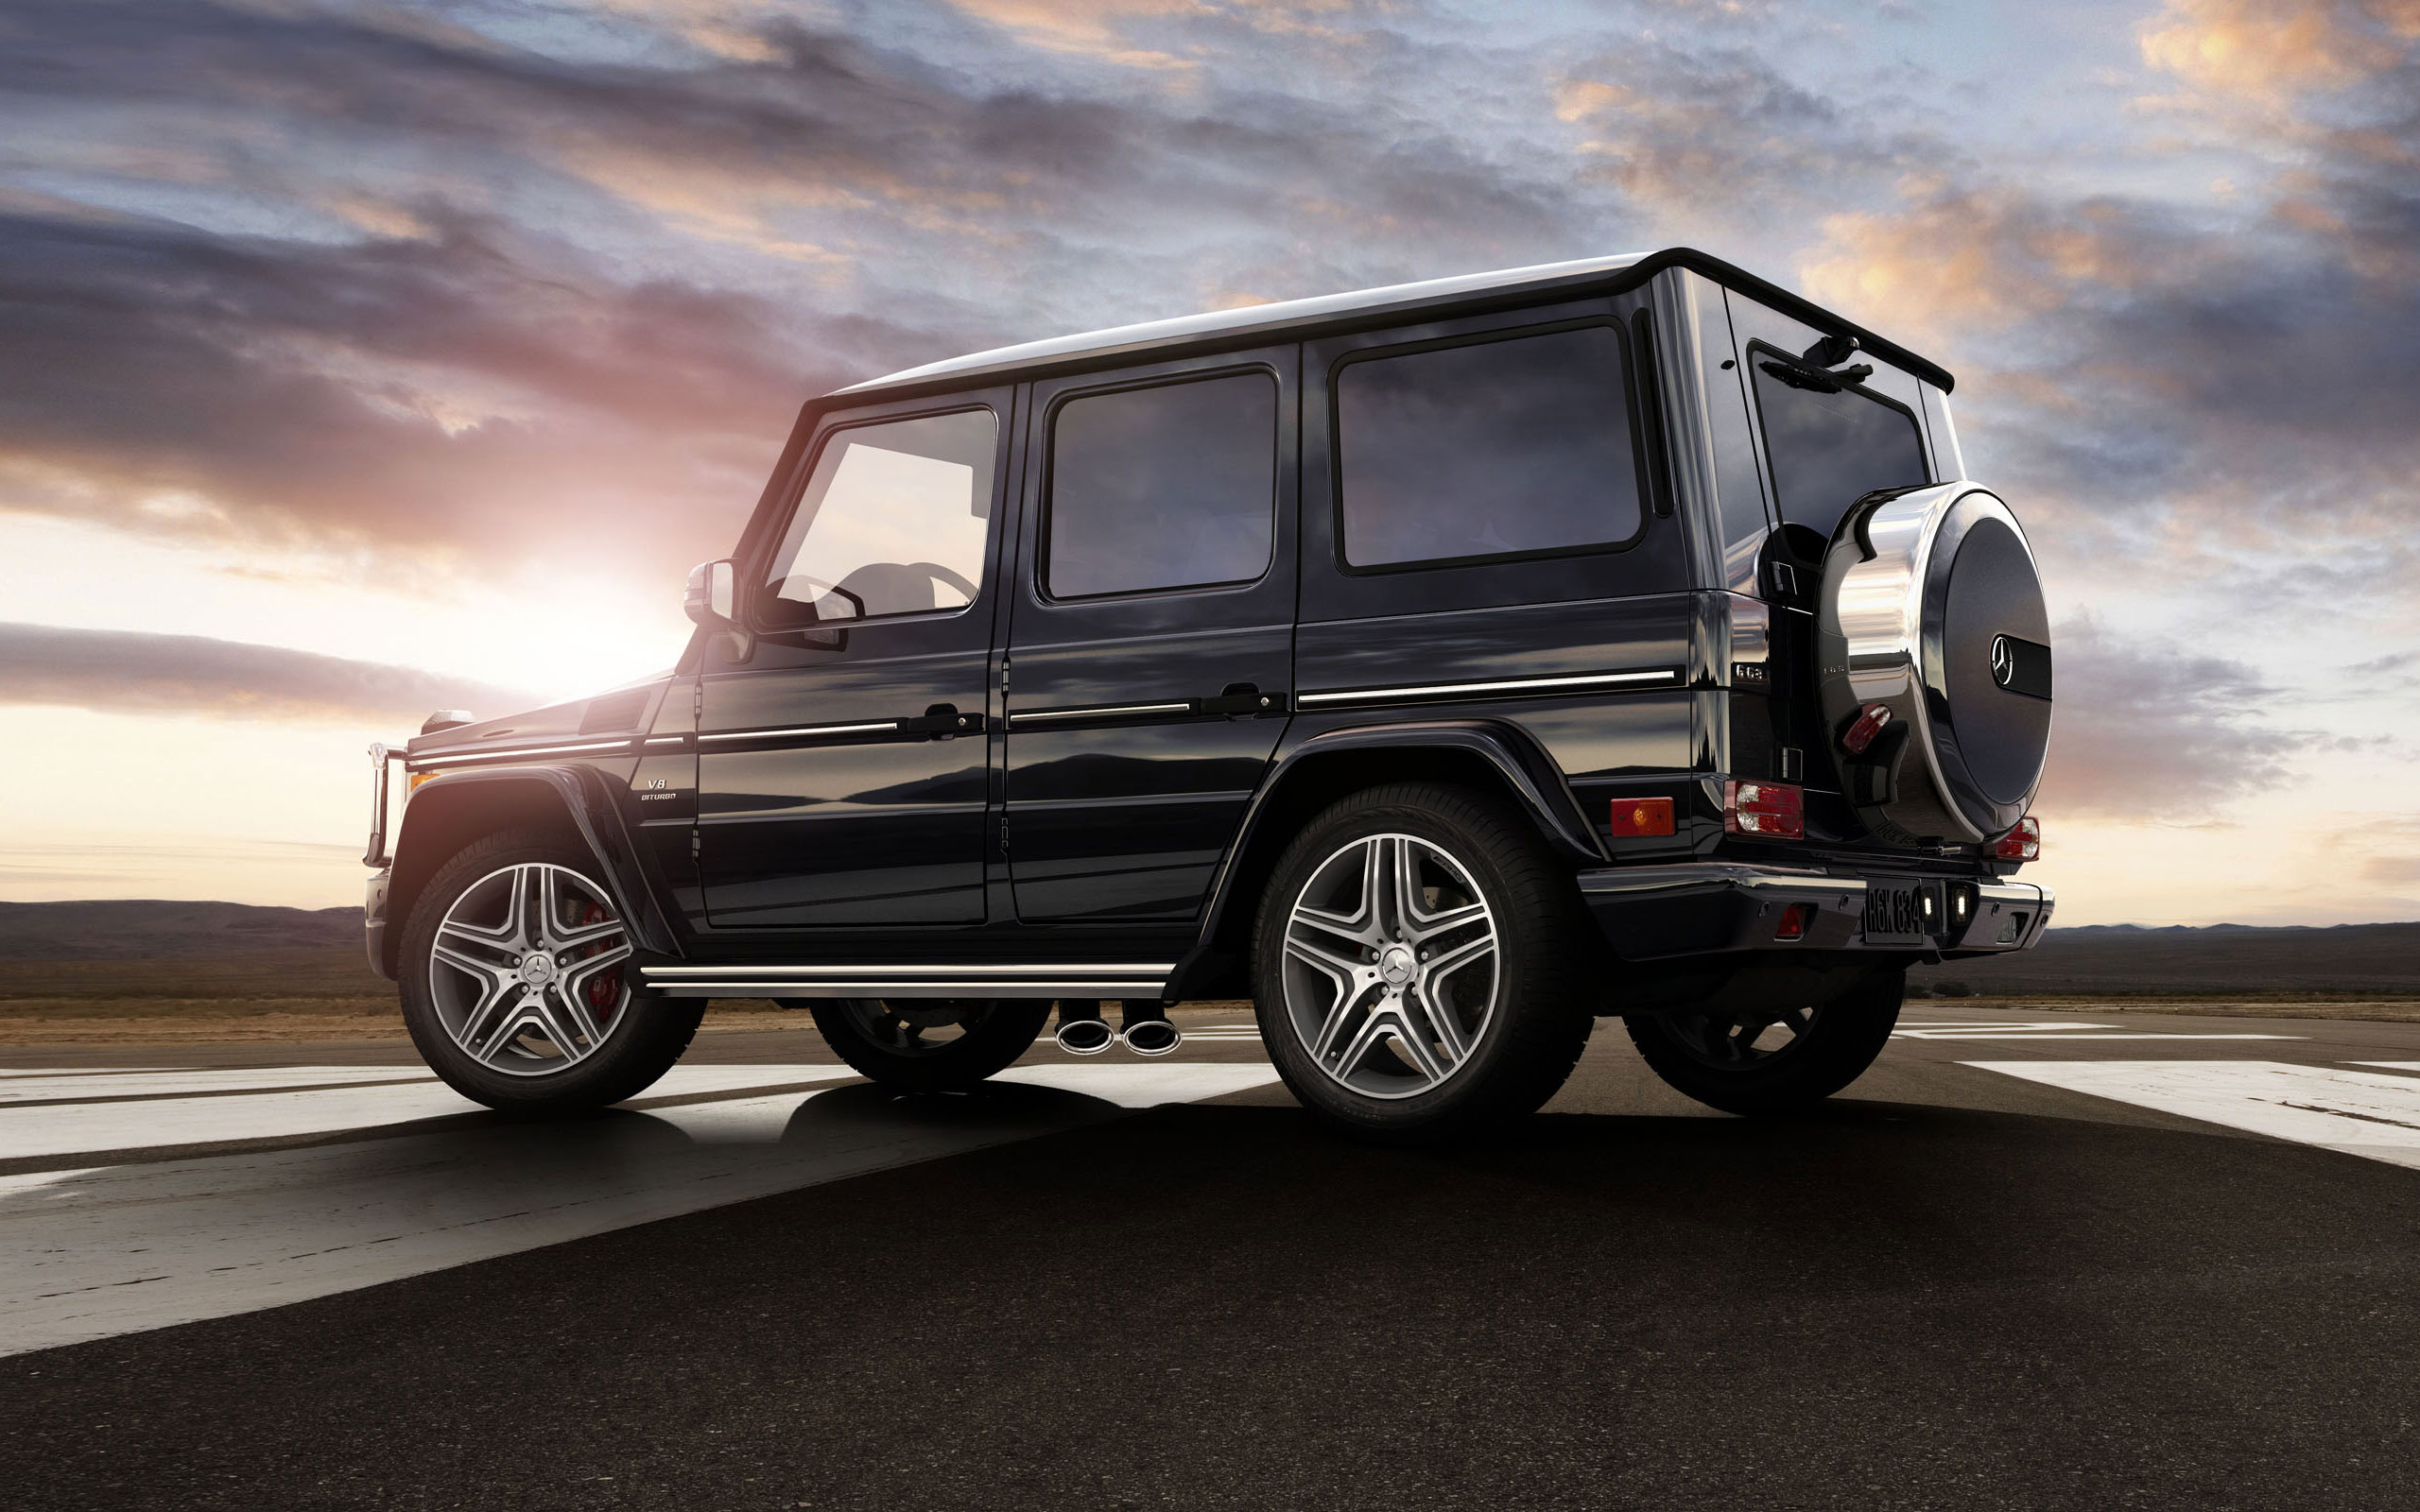 amg g63 in black with 20 inch amg wheels